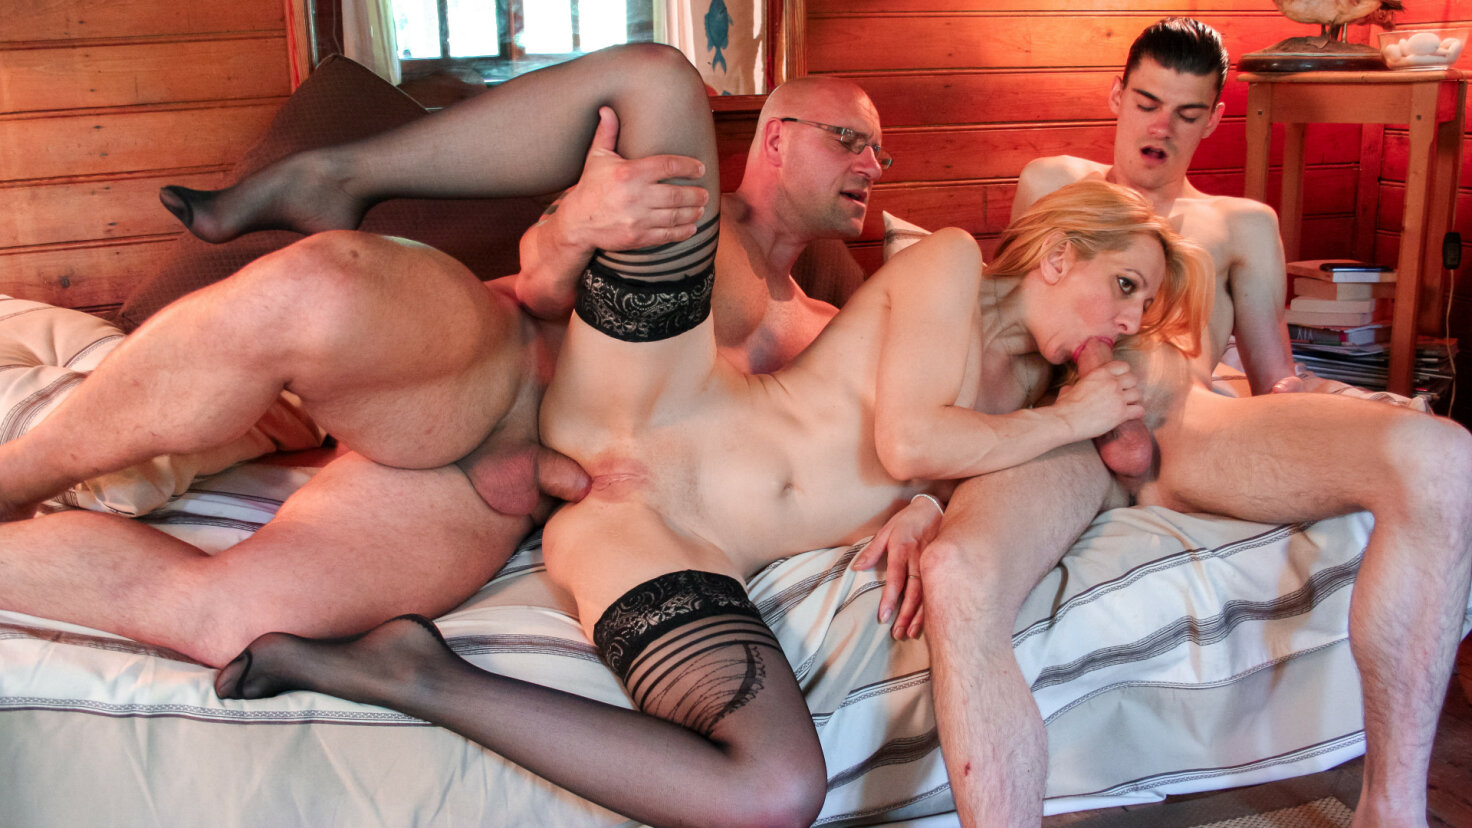 Slutty French blondie enjoys rough DP and two cumloads in hot MMF threesome